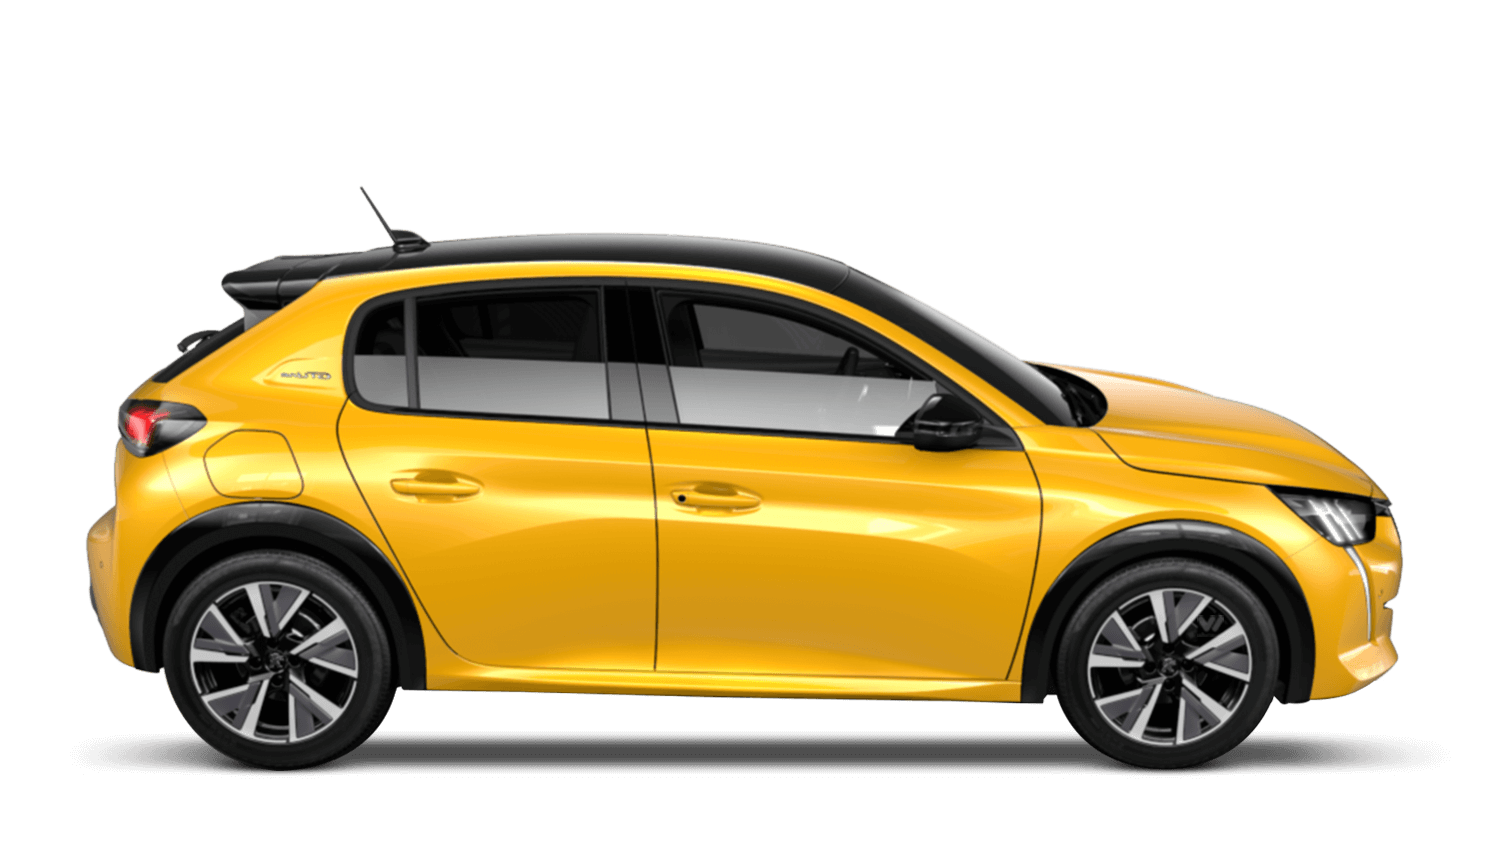 Faro Yellow All-new Peugeot 208